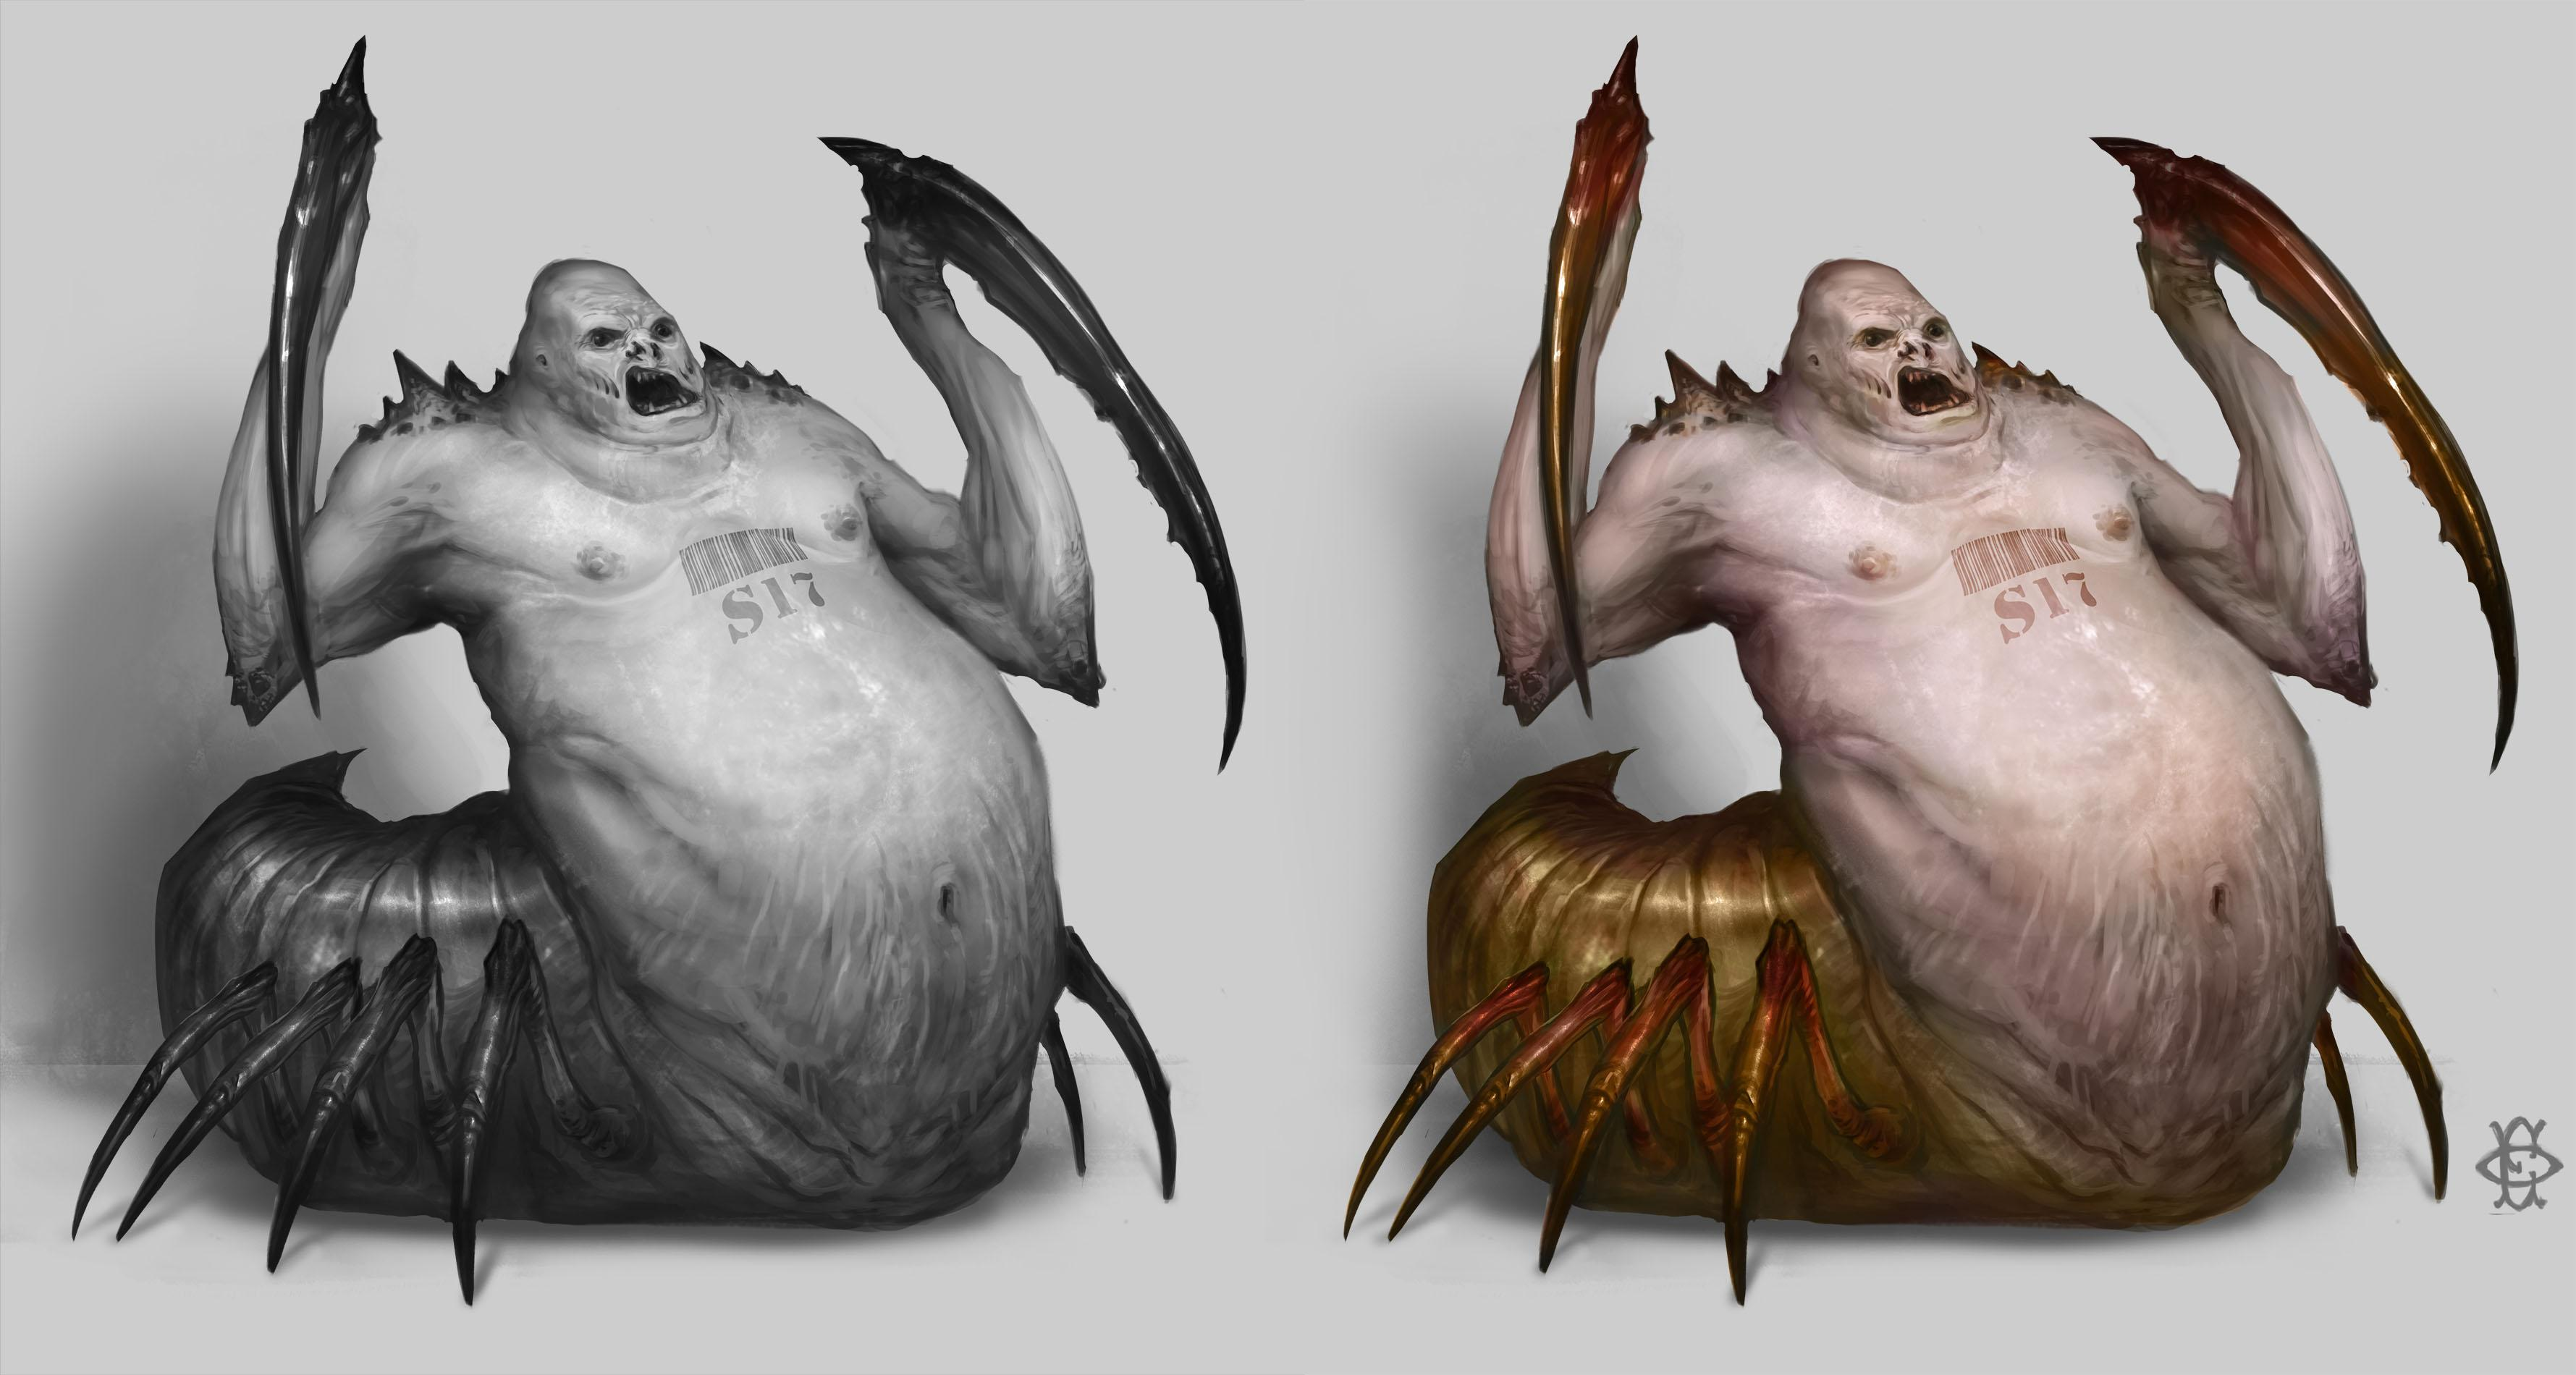 Genetic Aberration - Character design  - image 6 - student project